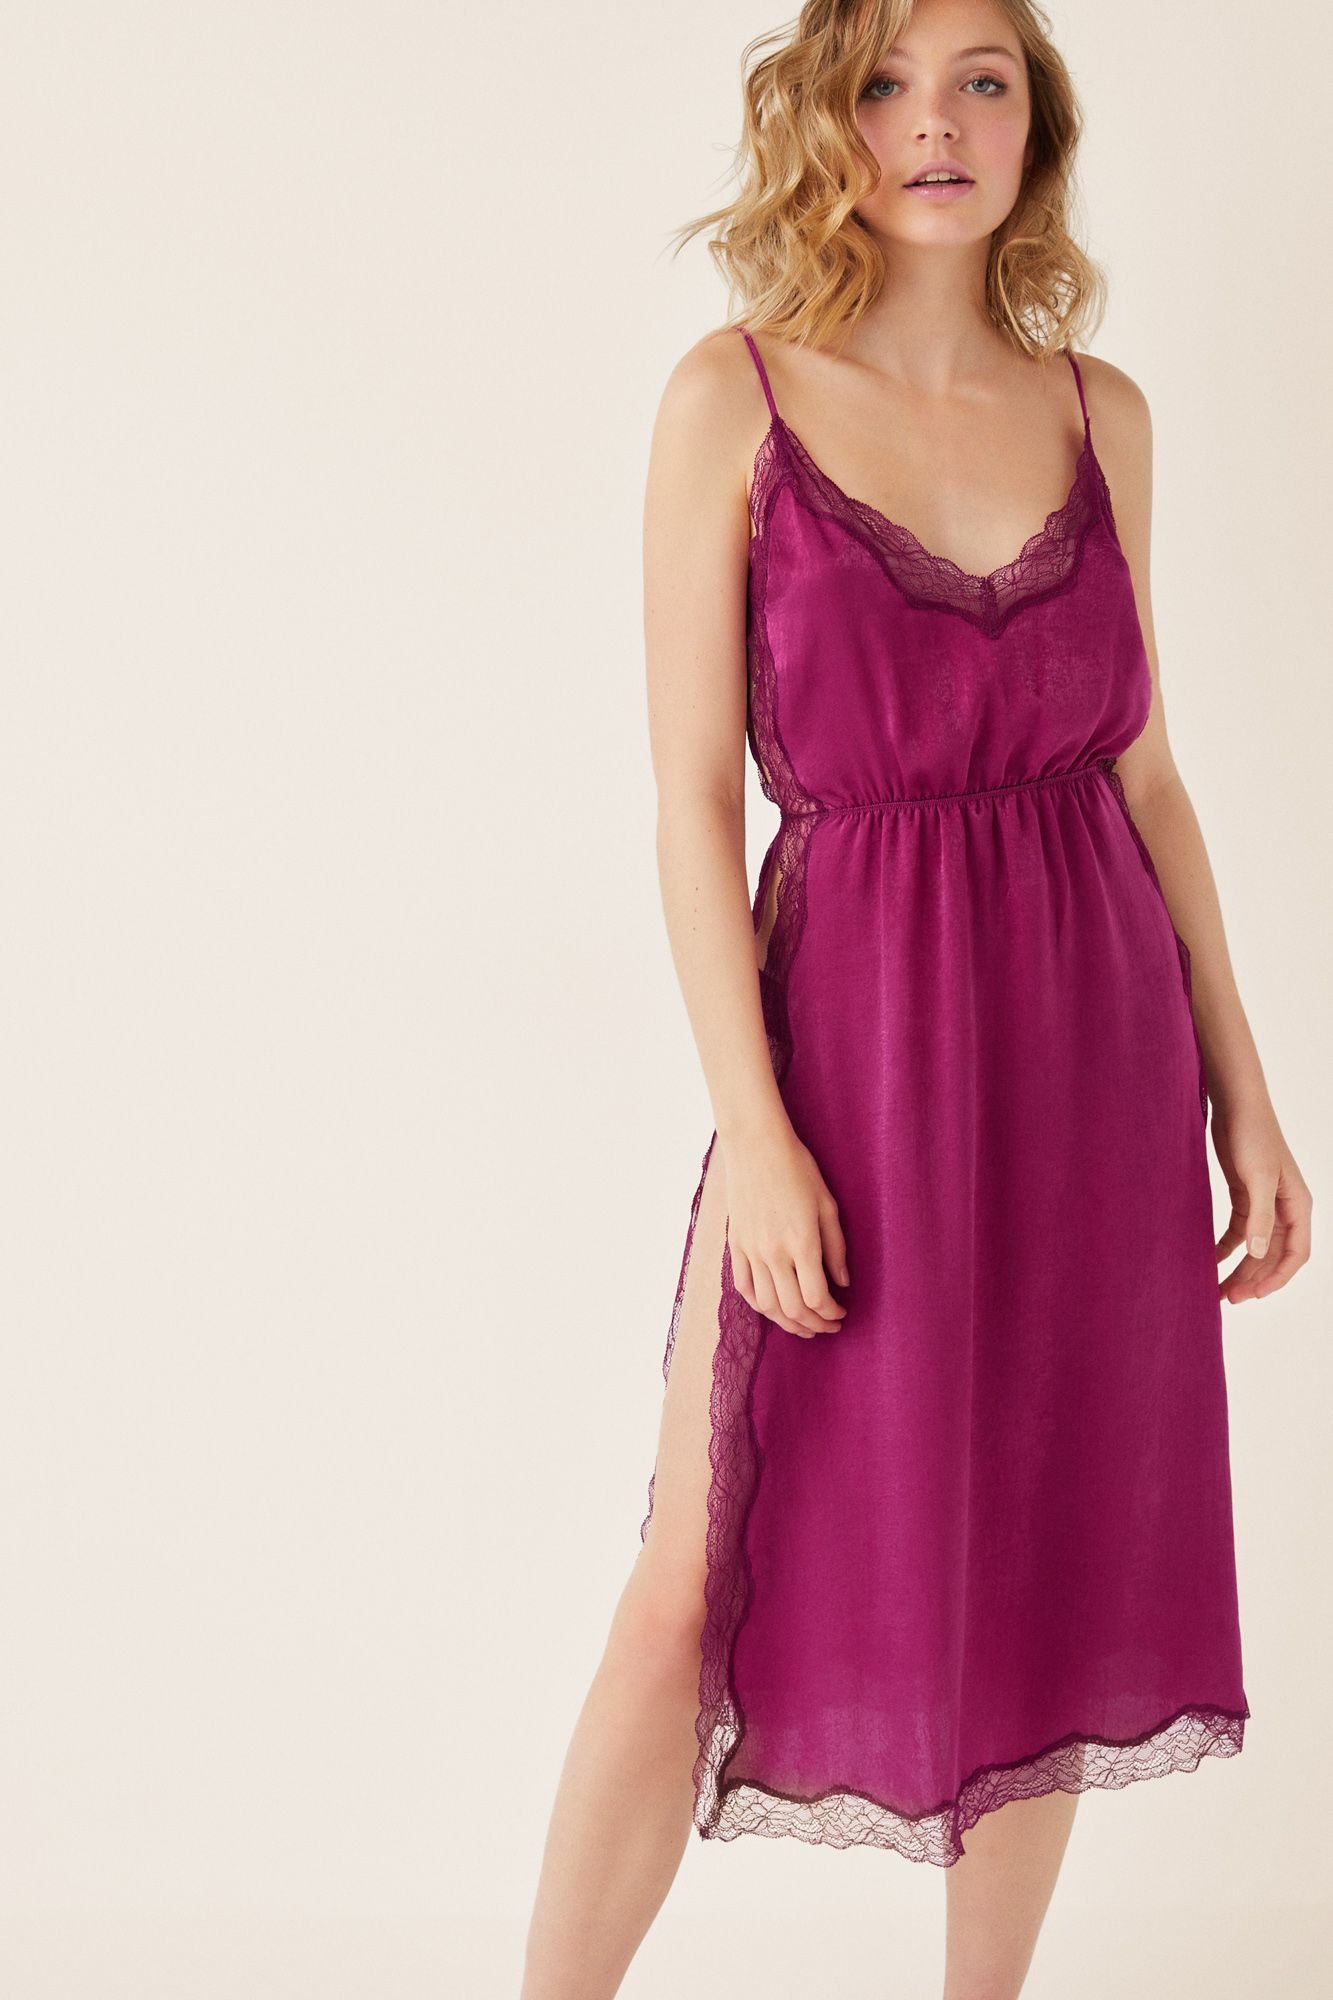 822be0e49 Midi satin nightgown and floral lace details. Side openings